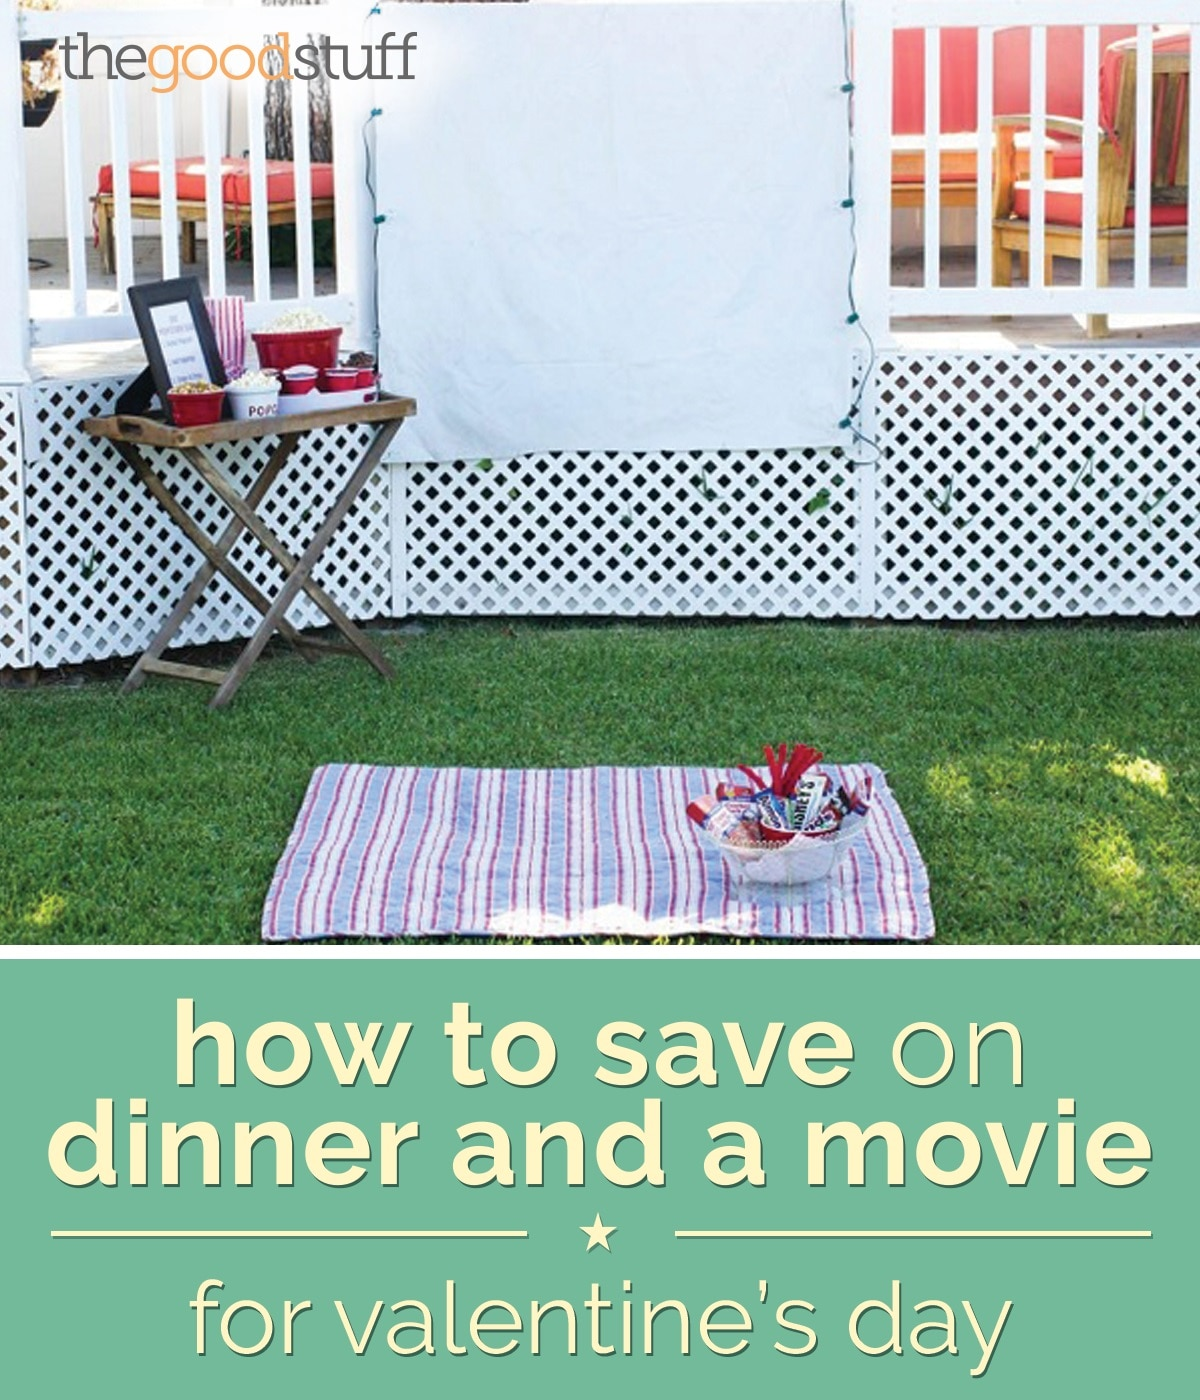 life-how-to-save-on-dinner-and-a-movie